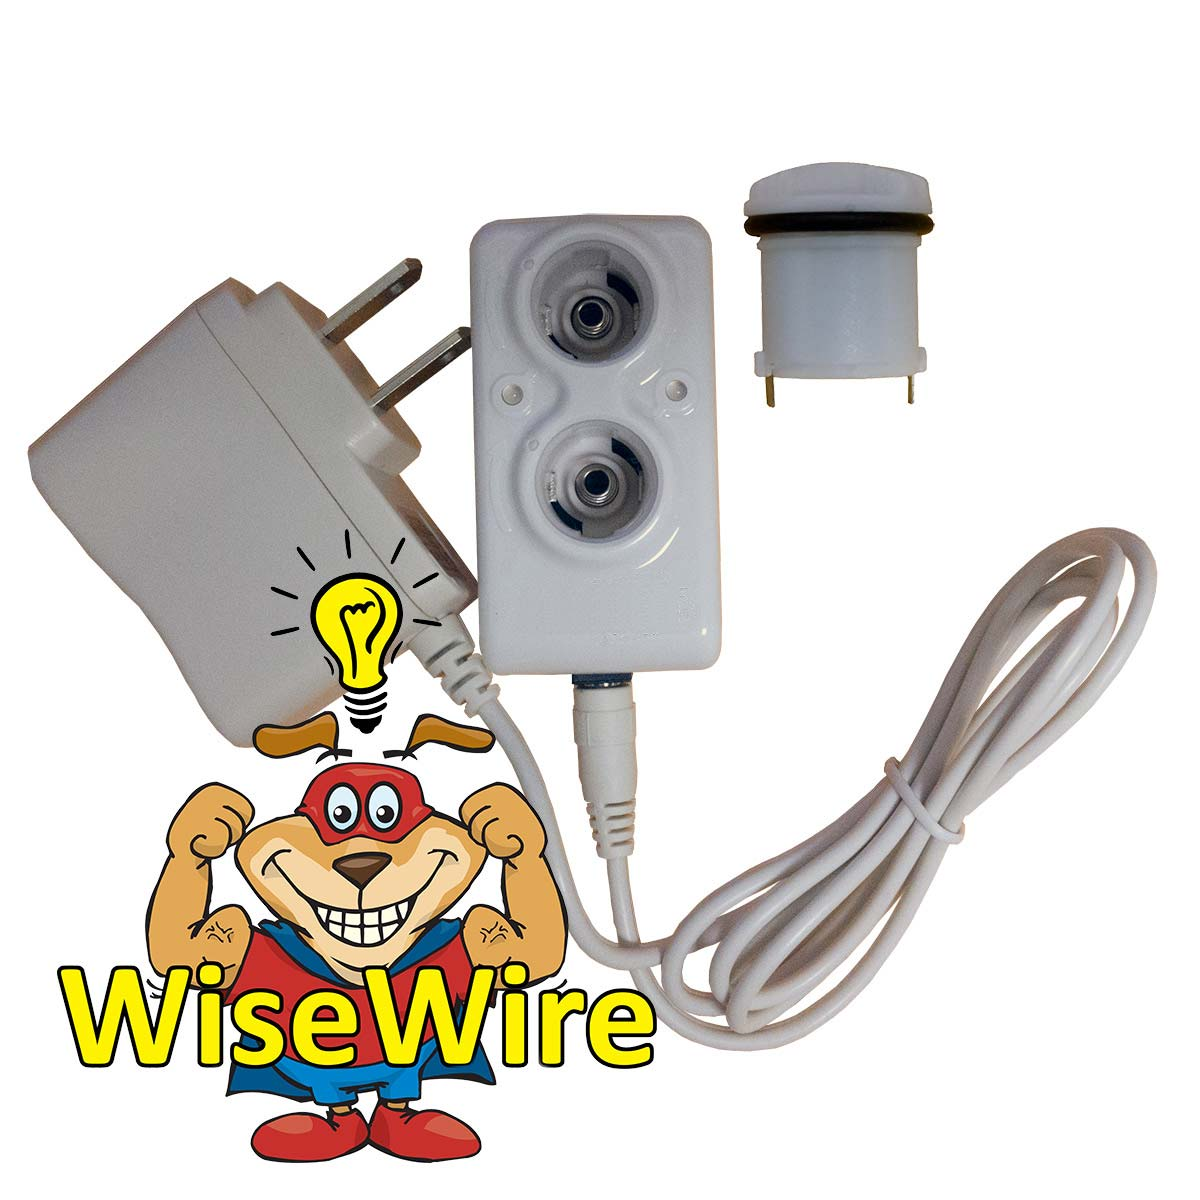 PSUSA WiseWire® Phoenix Rechargeable IF Battery Combo Kit White